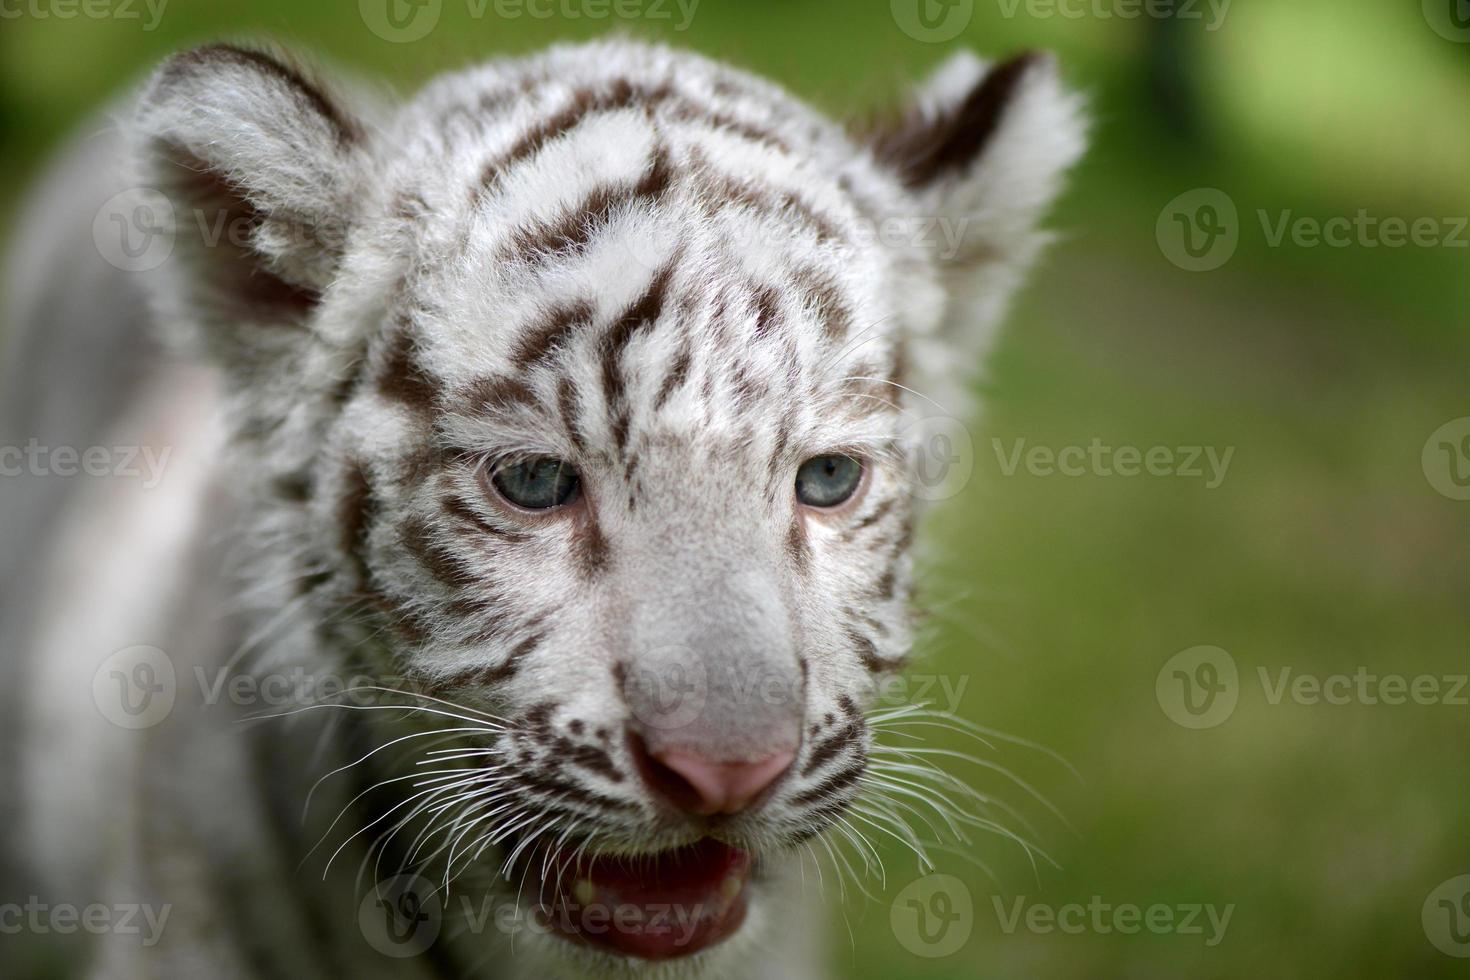 Cub of White Tiger face focus to head and eye photo